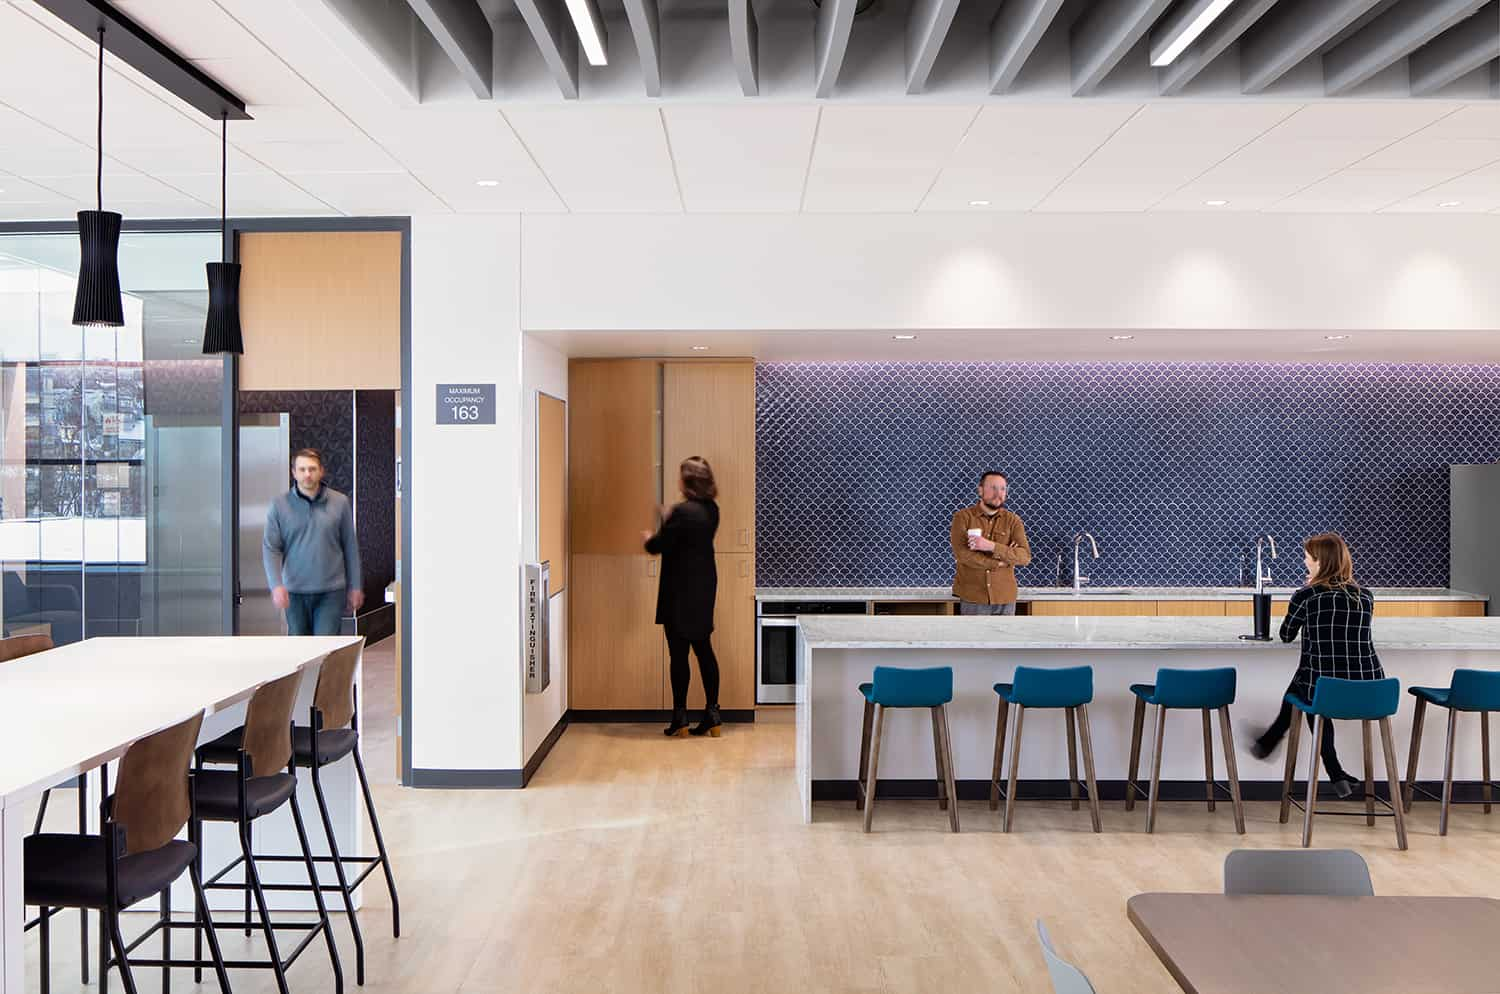 The work cafe with drop-in seating and a blue backsplash.